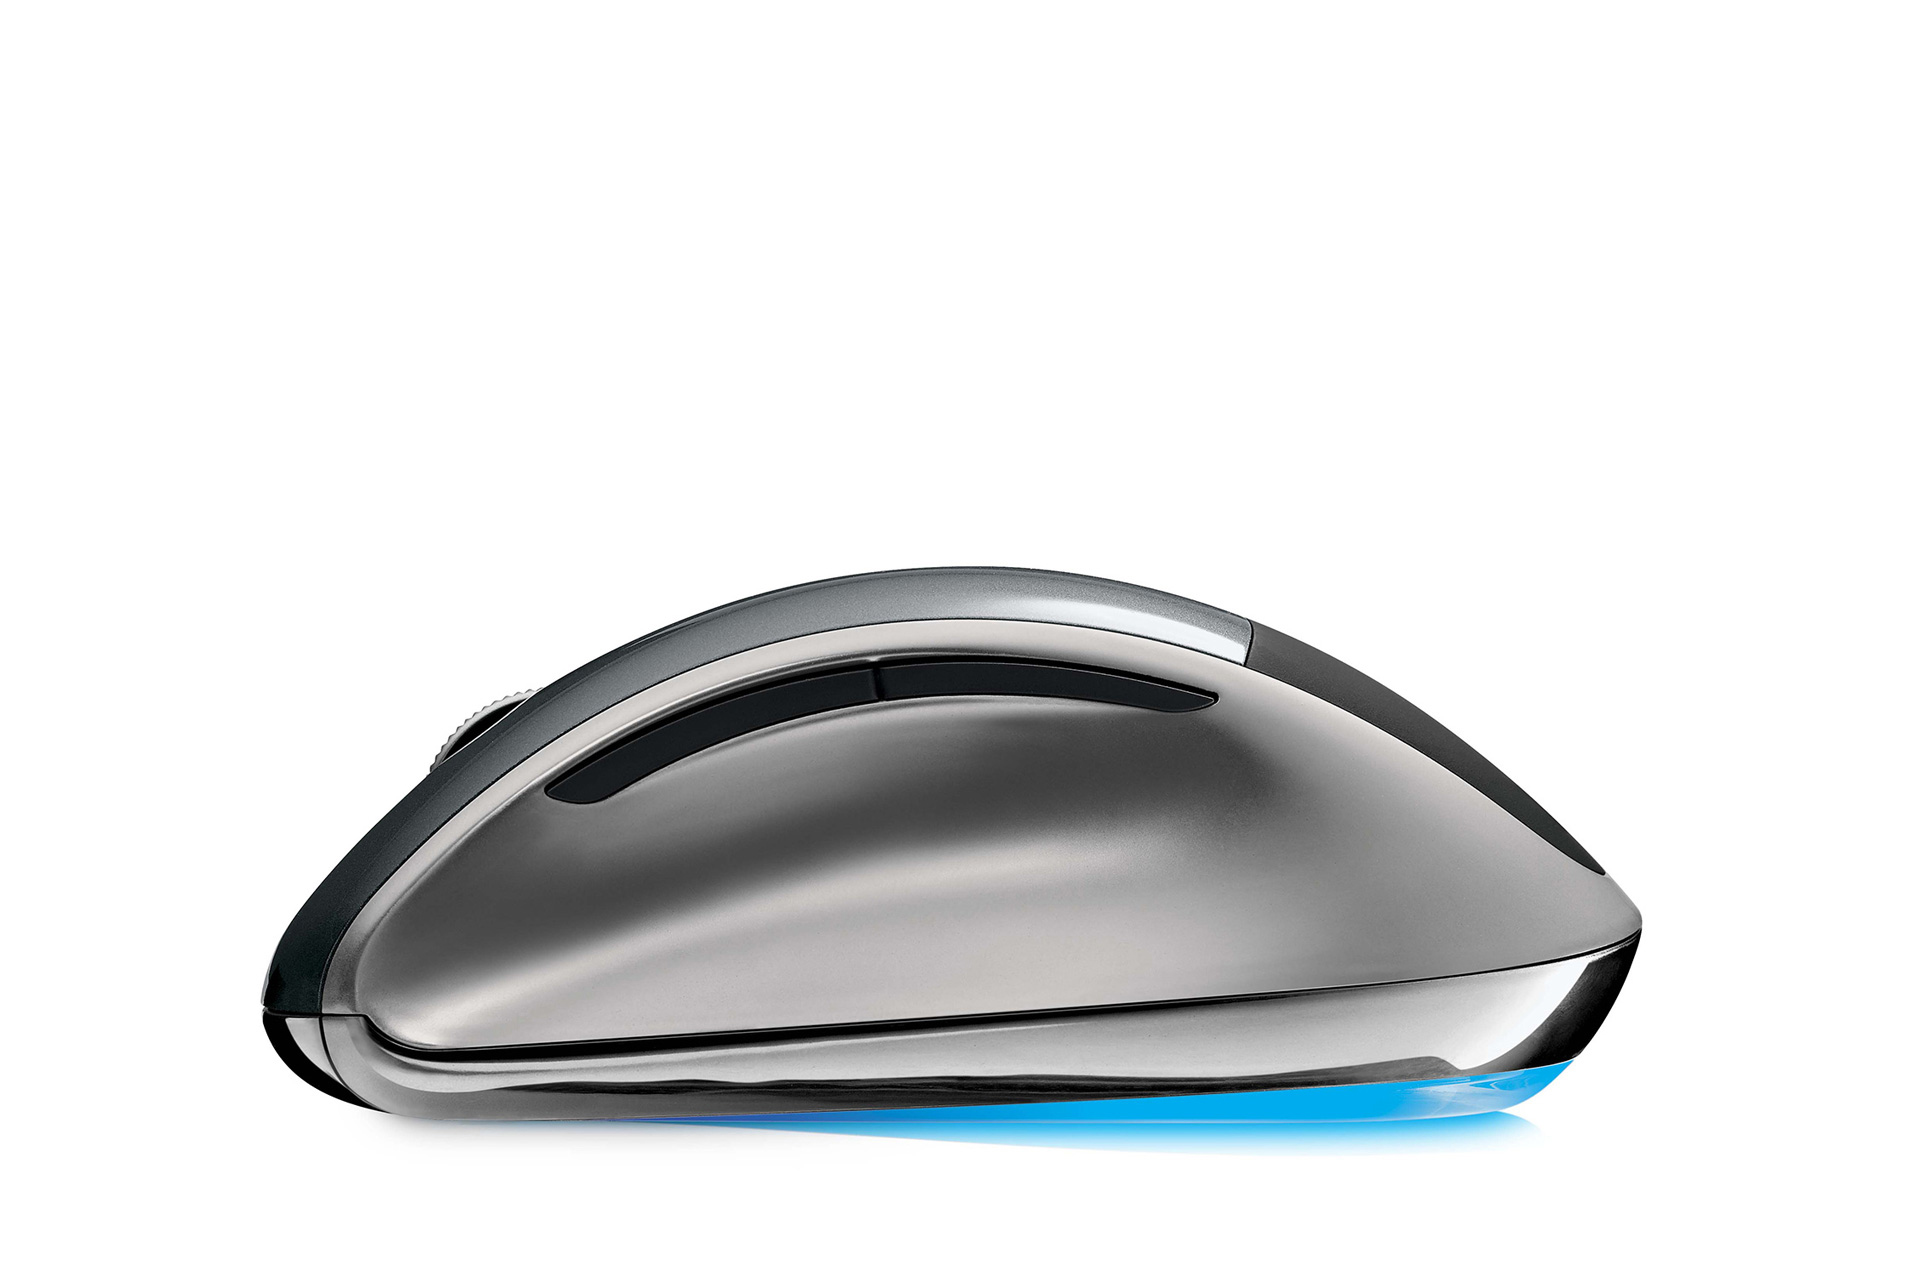 Microsoft Explorer Mouse with Bluetrack render